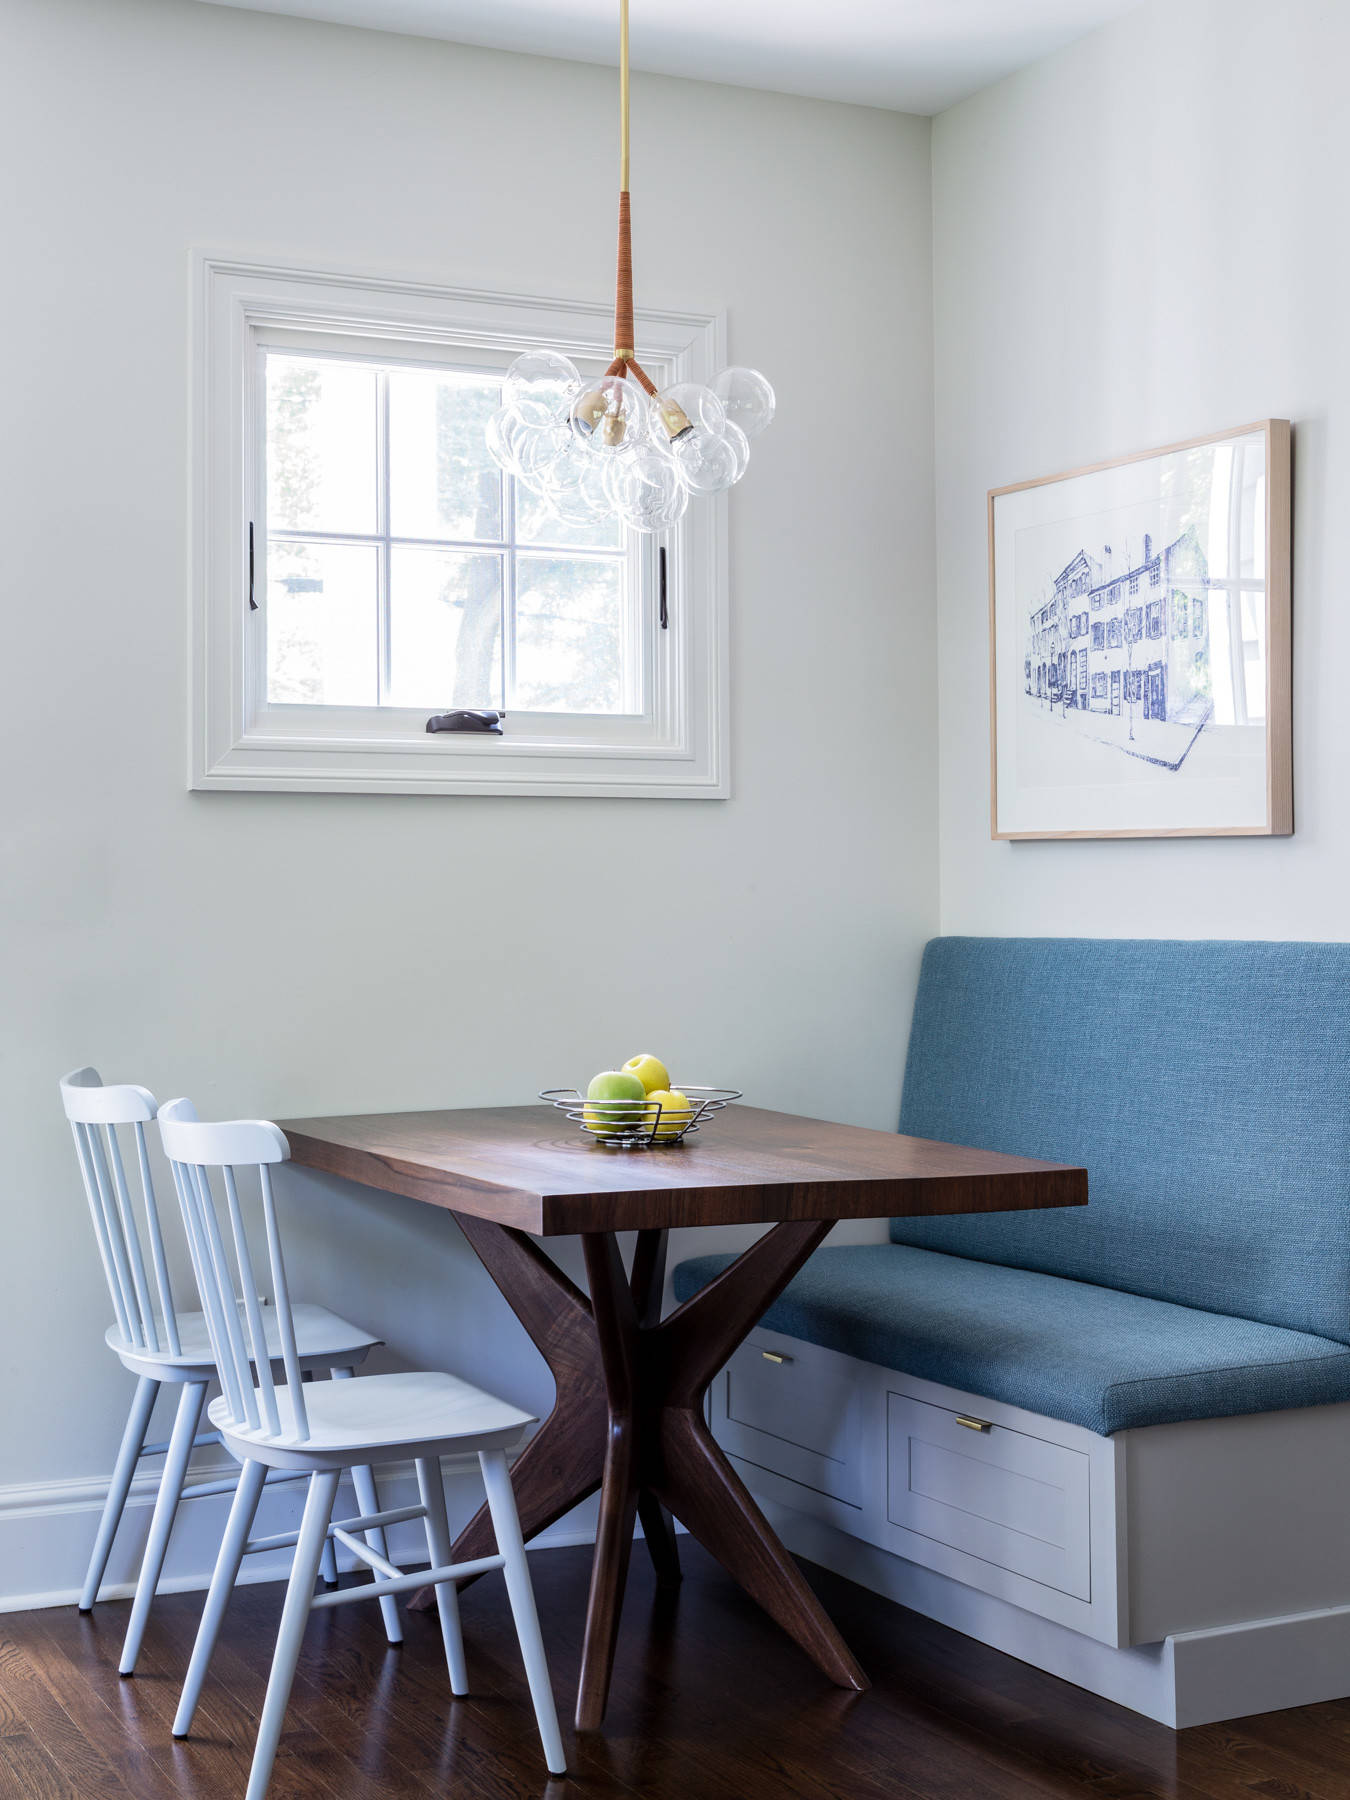 Bench-in-the-corner-for-the-small-dining-room-also-offers-clever-storage-space-82853